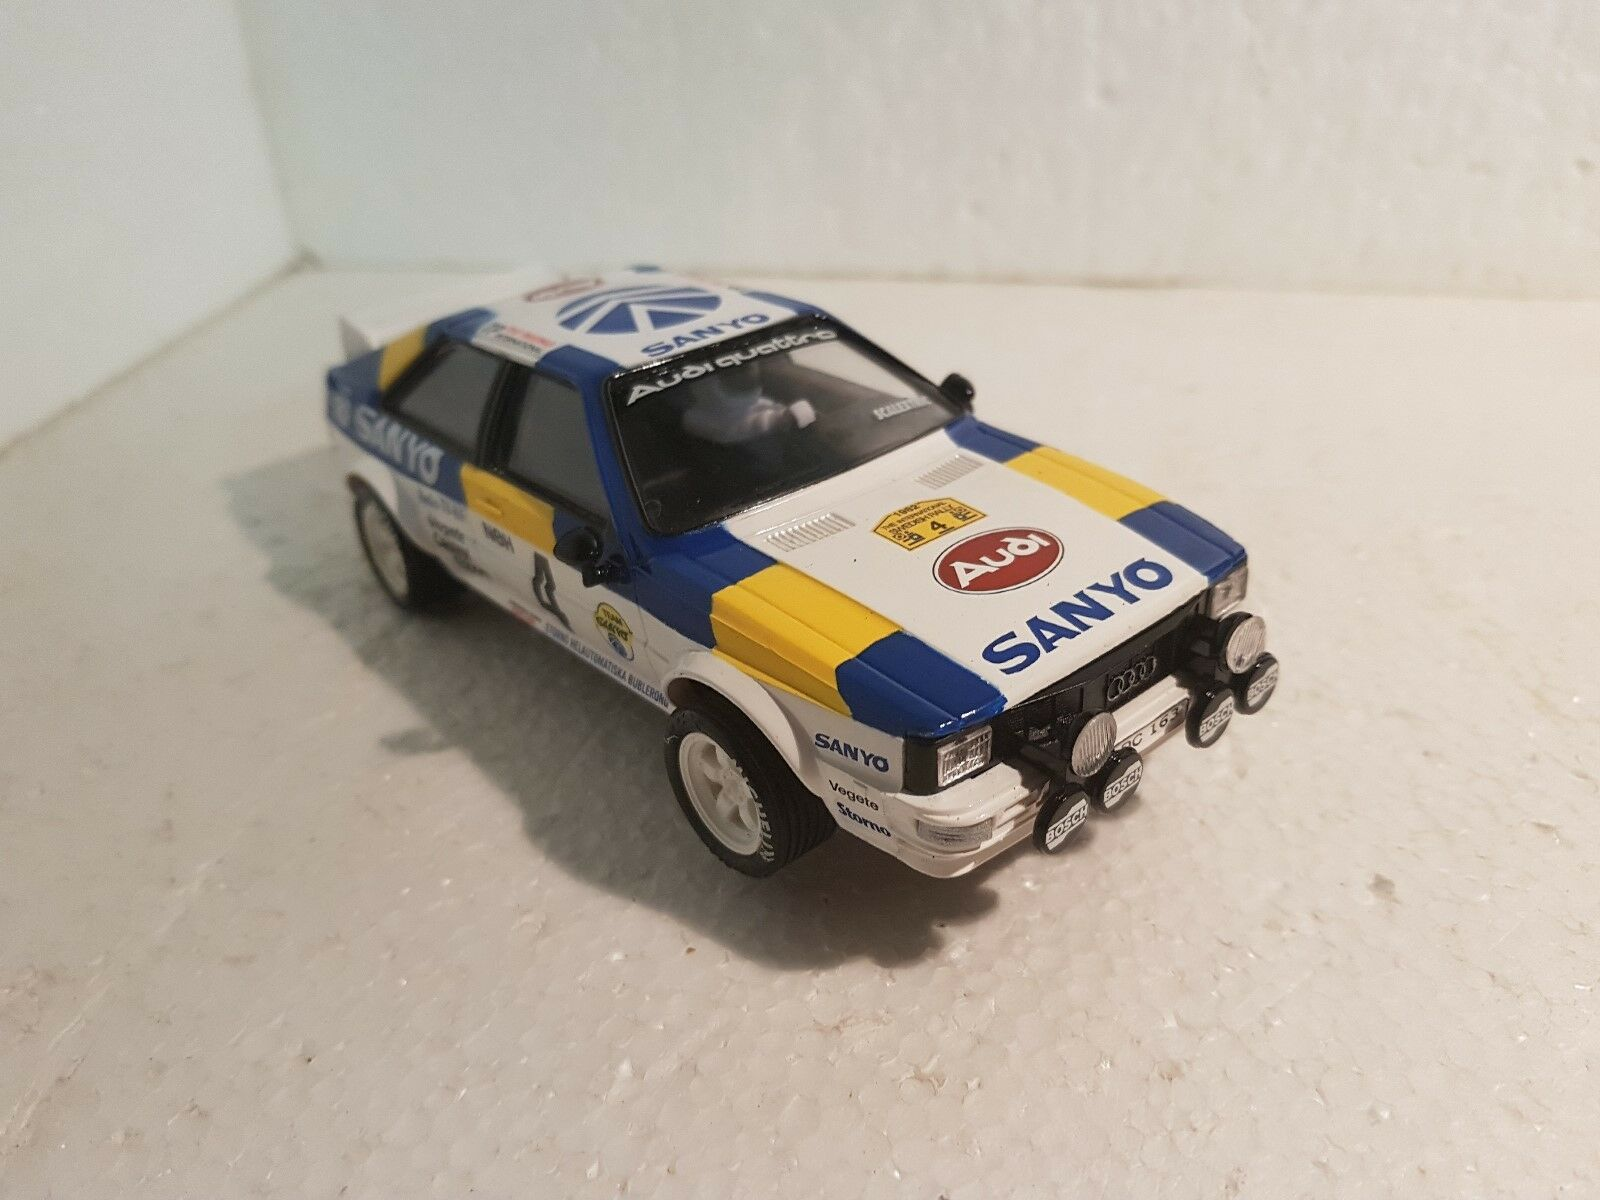 Qq SCALEXTRIC SPAIN PLANET RALLY MYTHICAL AUDI QUATTRO 1982 SWEDISH RALLY